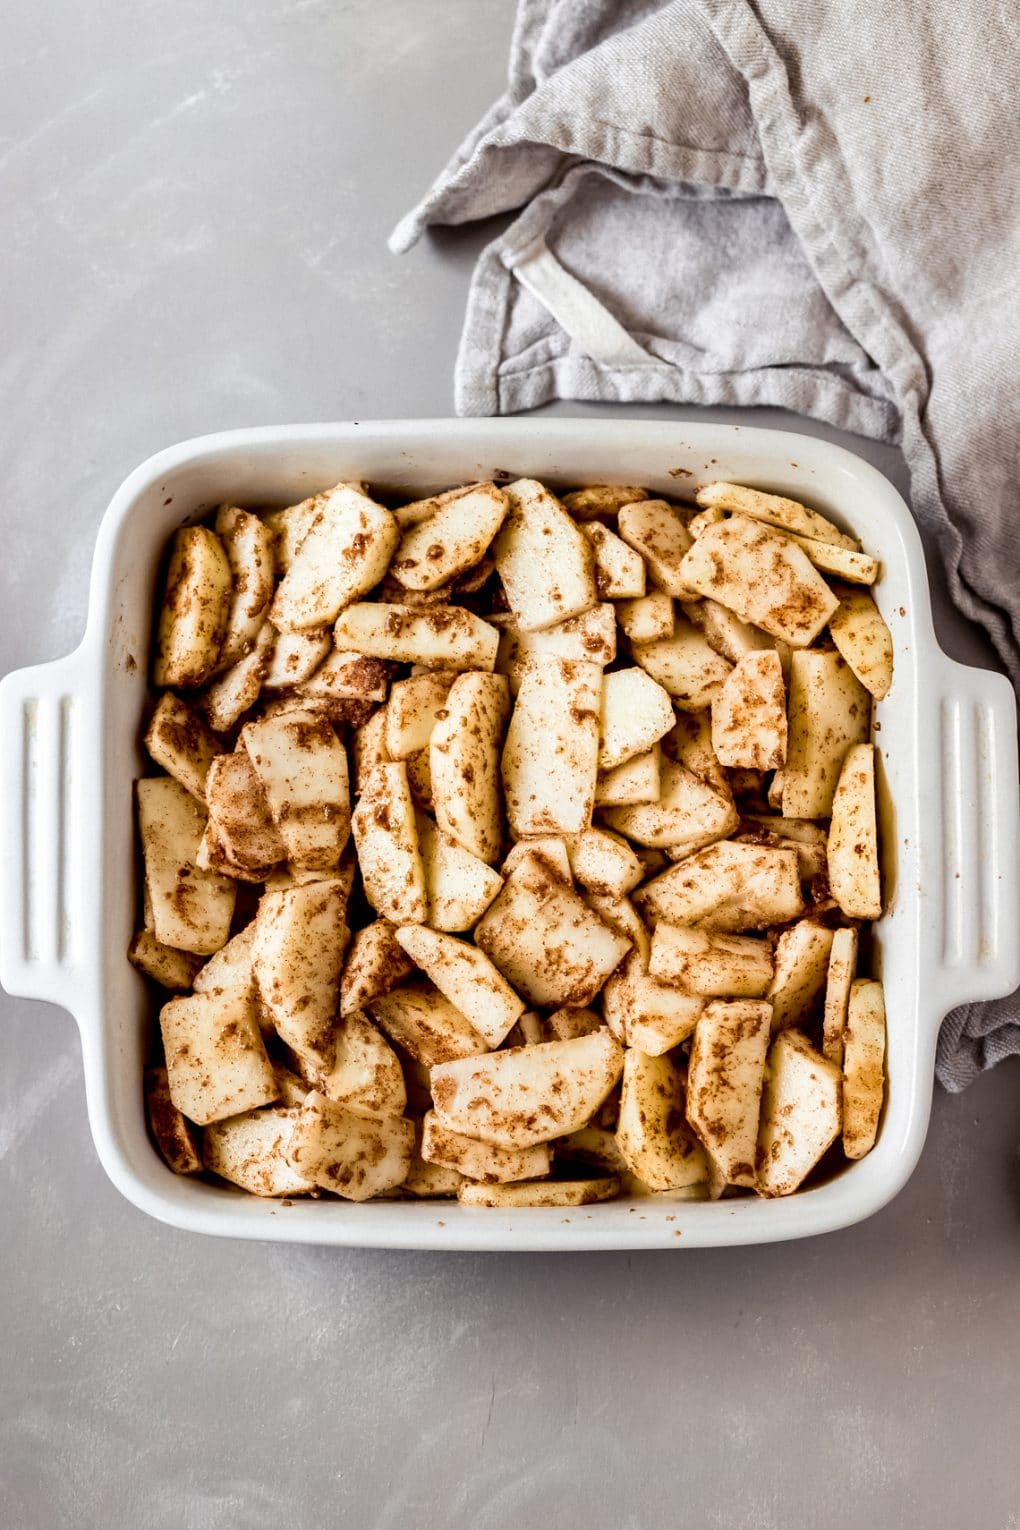 sliced apples in a baking dish